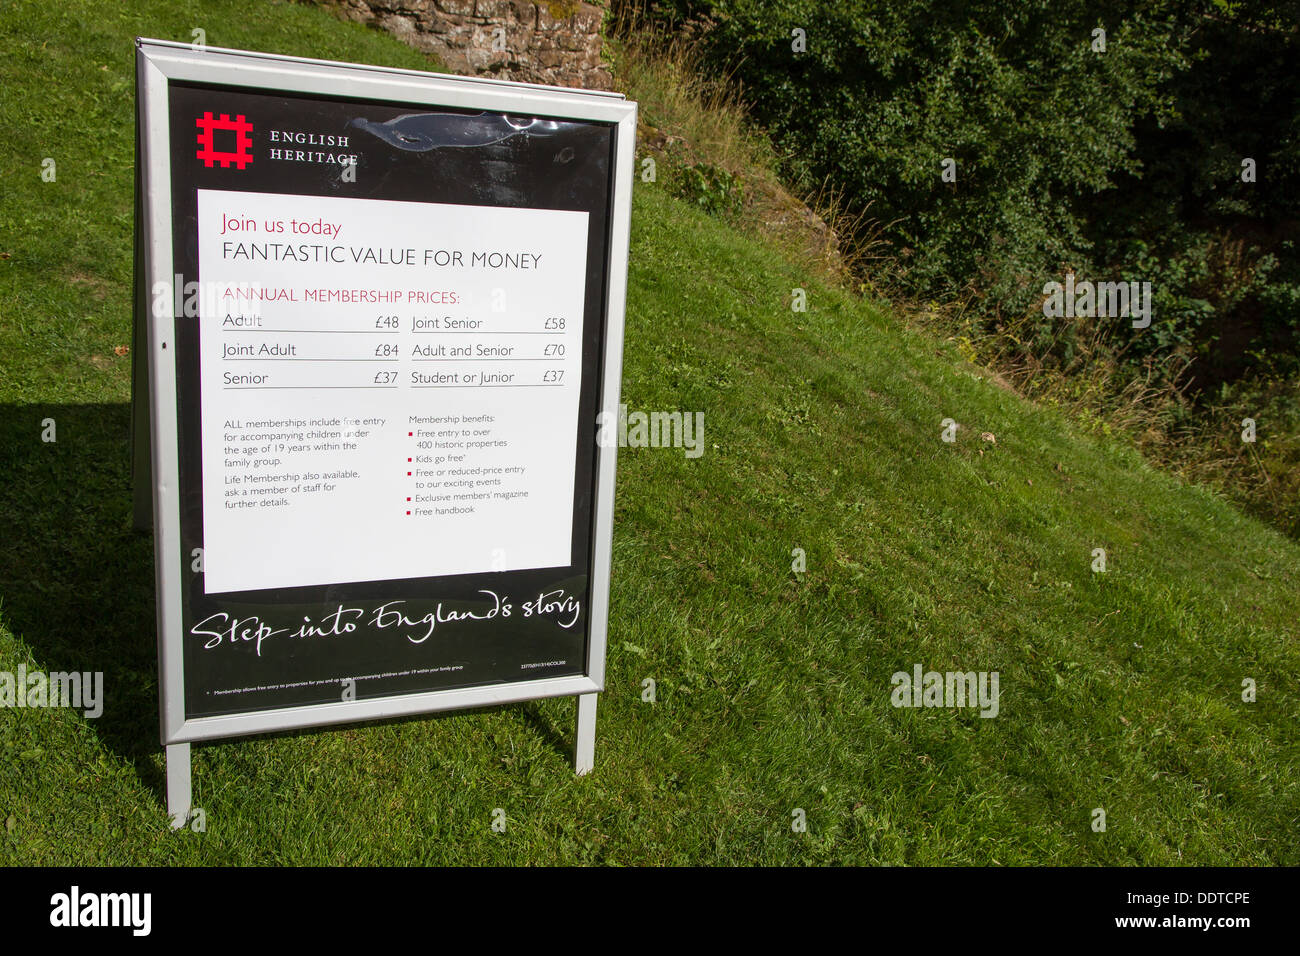 A-Board pavement sign advertising English Heritage Membership at the entrance to one of their properties. - Stock Image